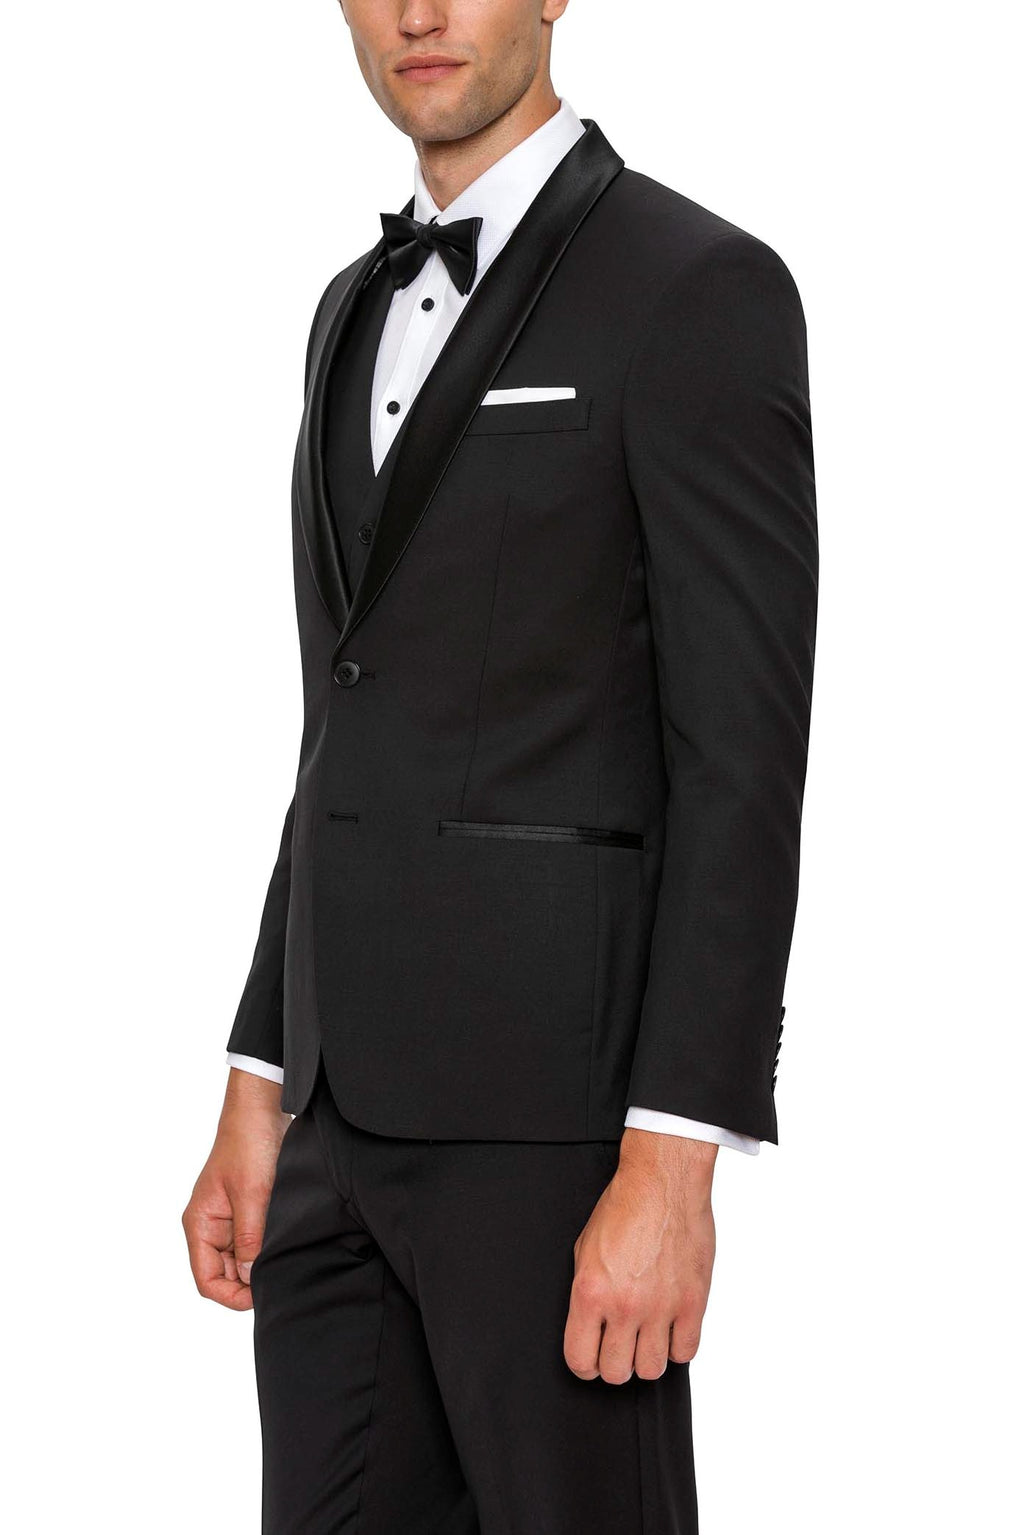 Gibson Spectre F34087 Black Shawl 2Pce Dinner Suit